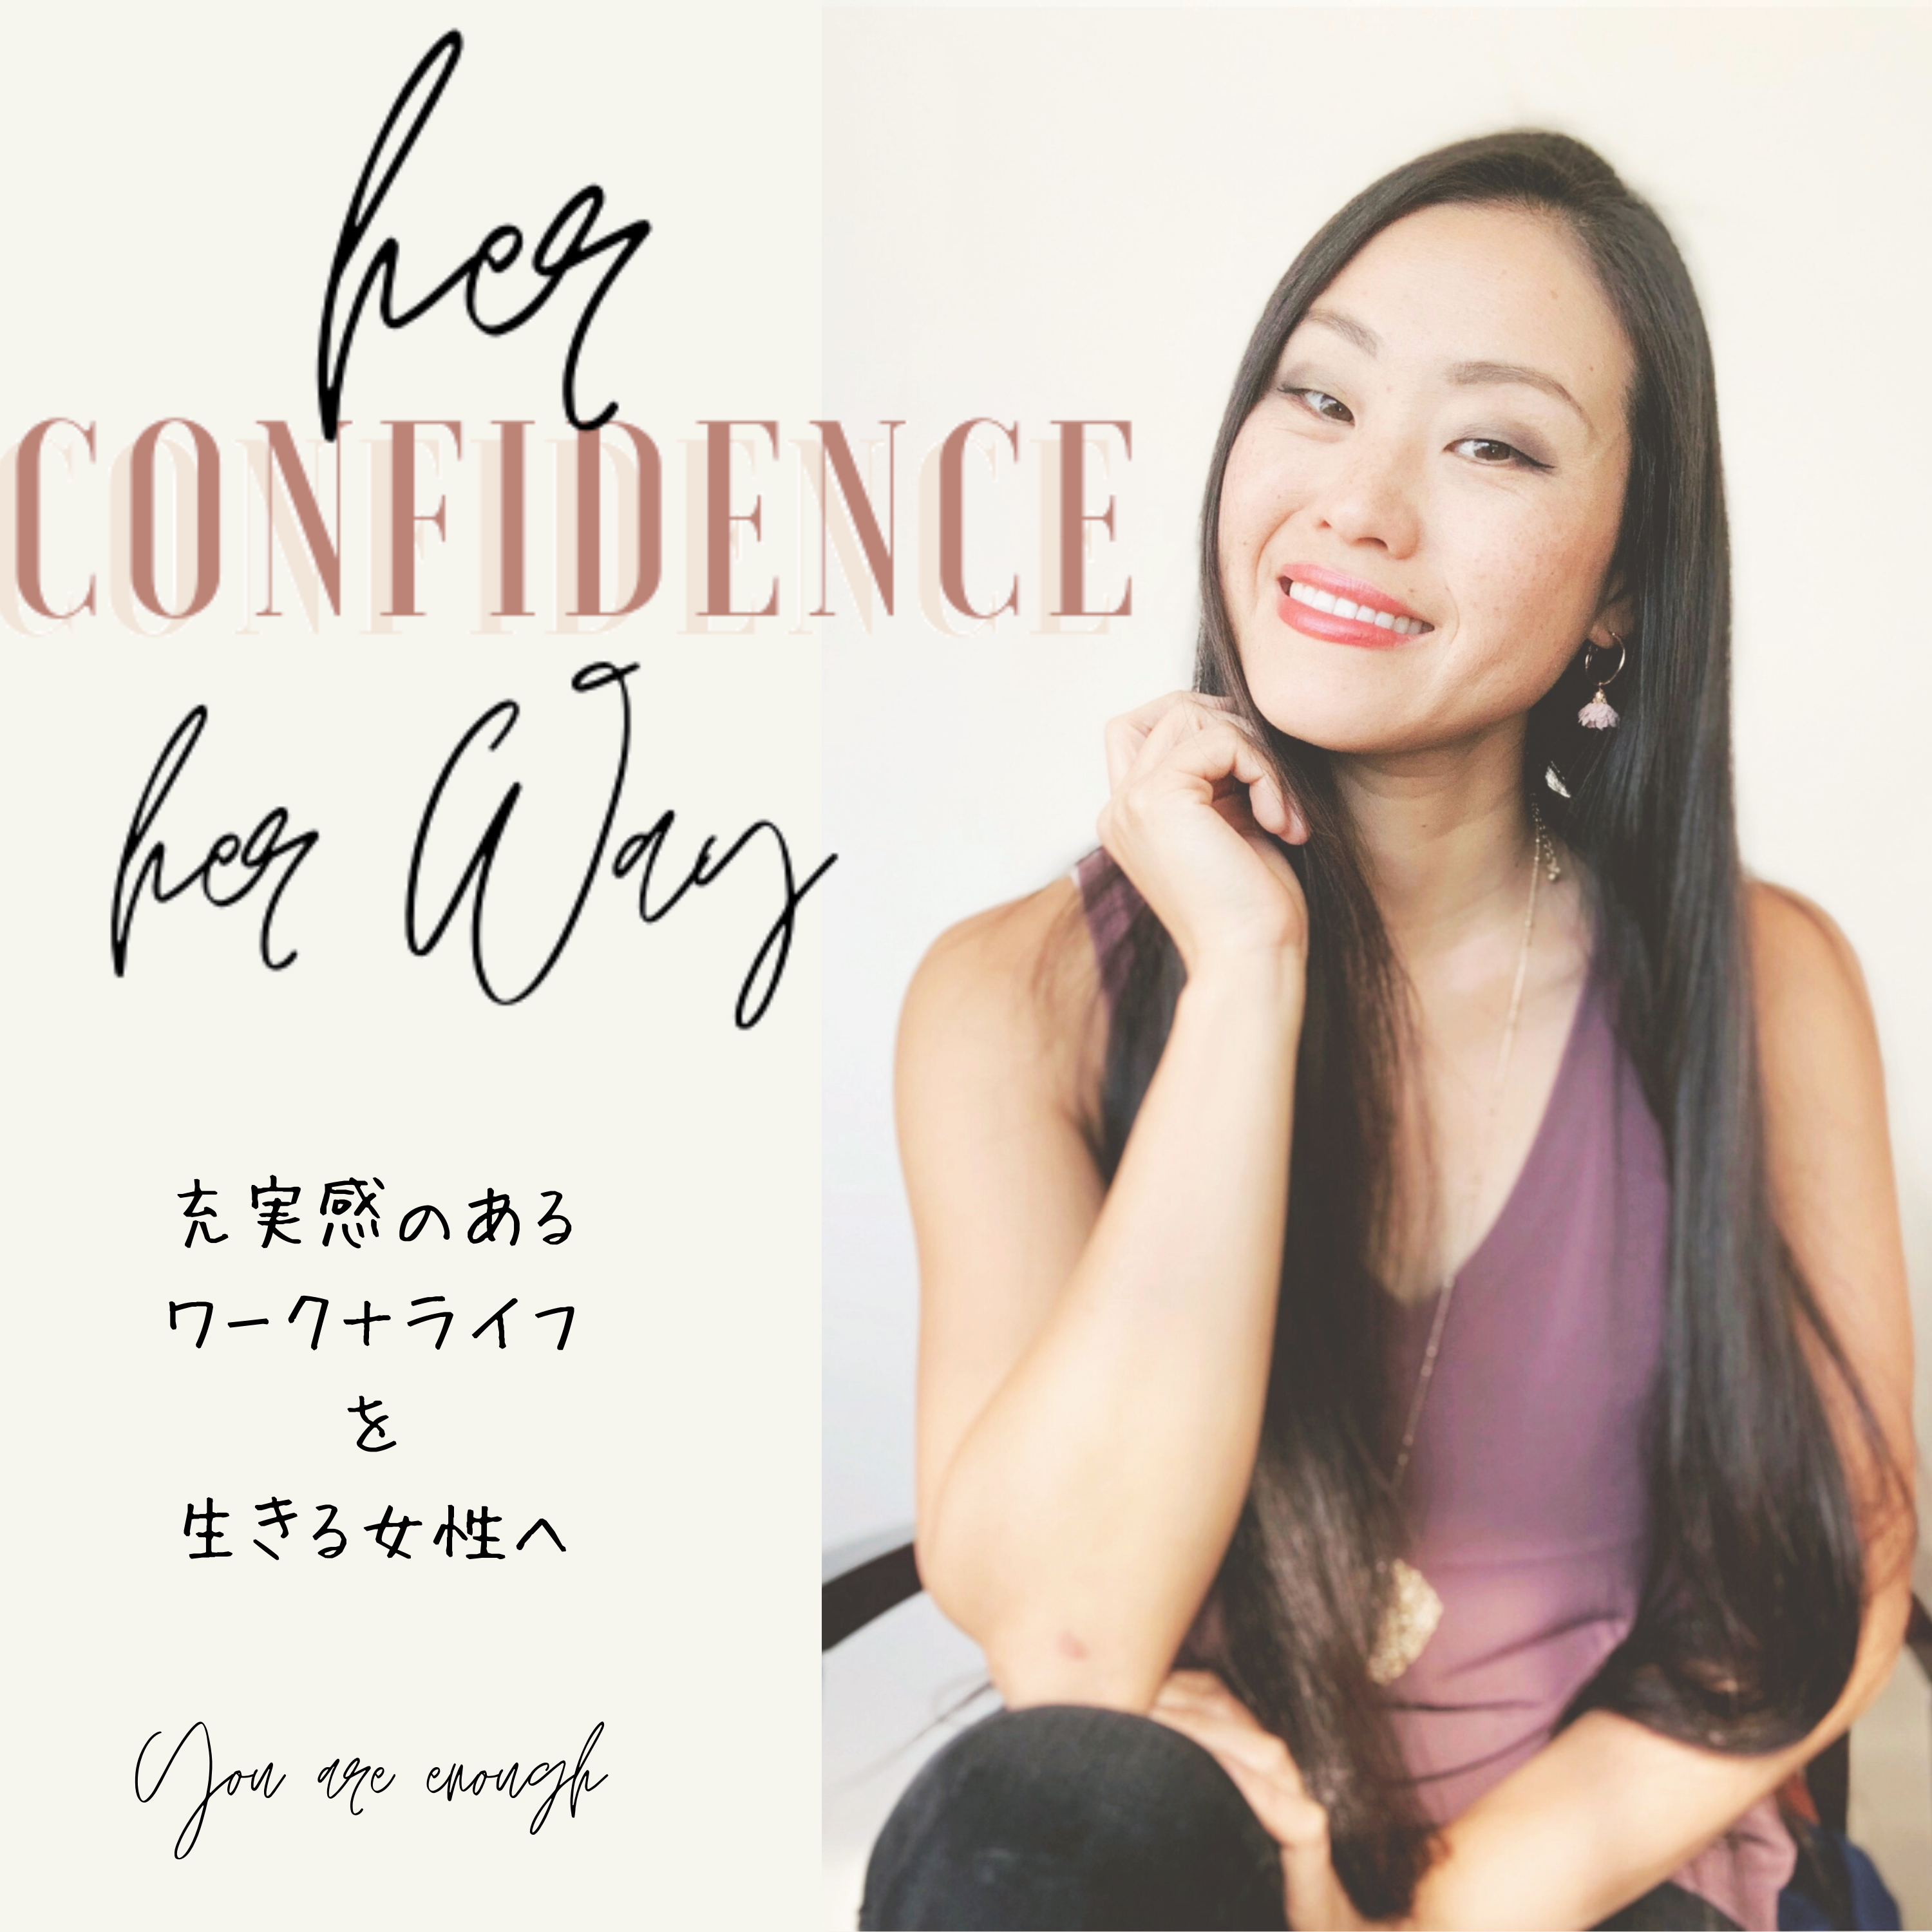 Her Confidence Her Way |アメリカ発、女性のワークライフ+自信+マインドセット show art